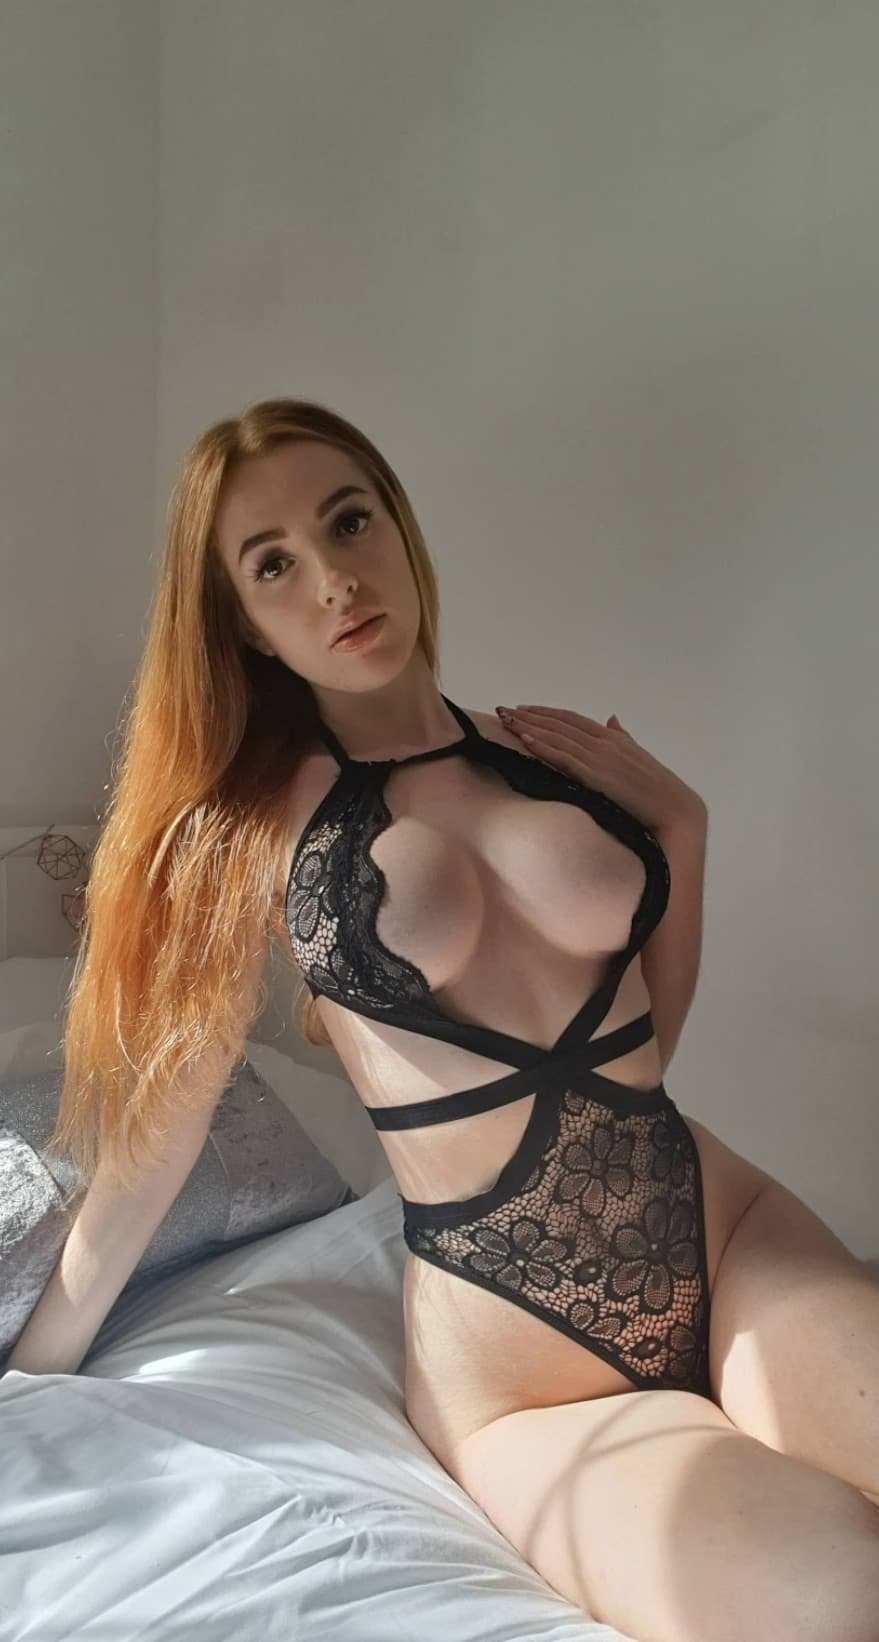 Scarlett Jones in a black lacy body red hair pale skin showing off her big tits slim looking very innocent